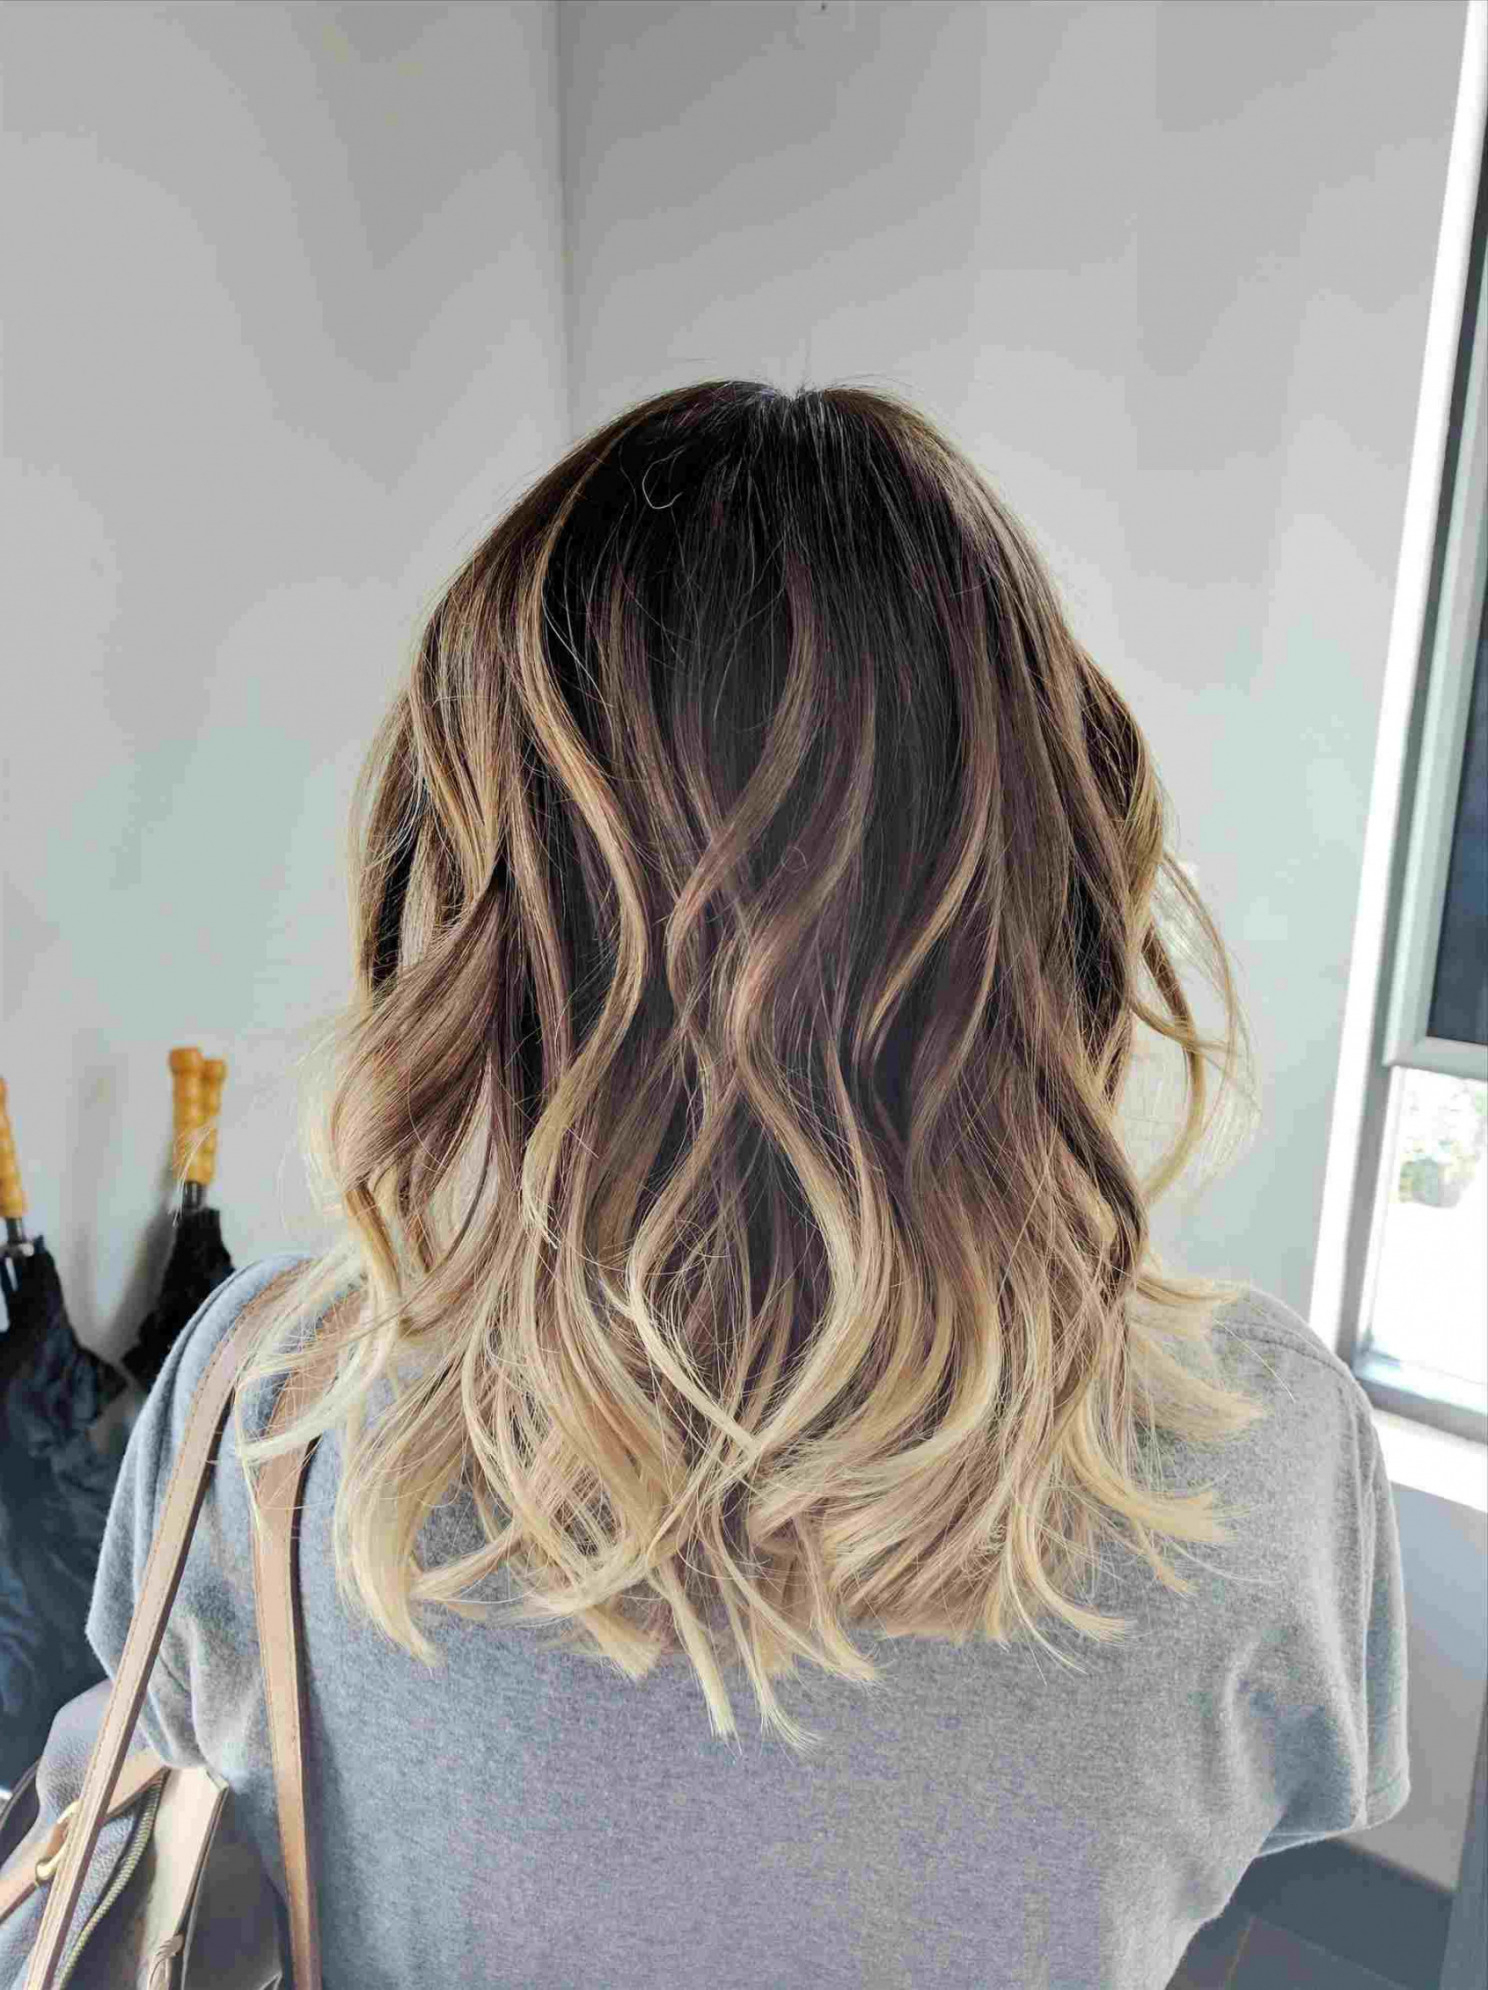 Best Hairstyles And Haircuts Throughout 2017 Medium Hairstyles And Highlights (View 6 of 20)